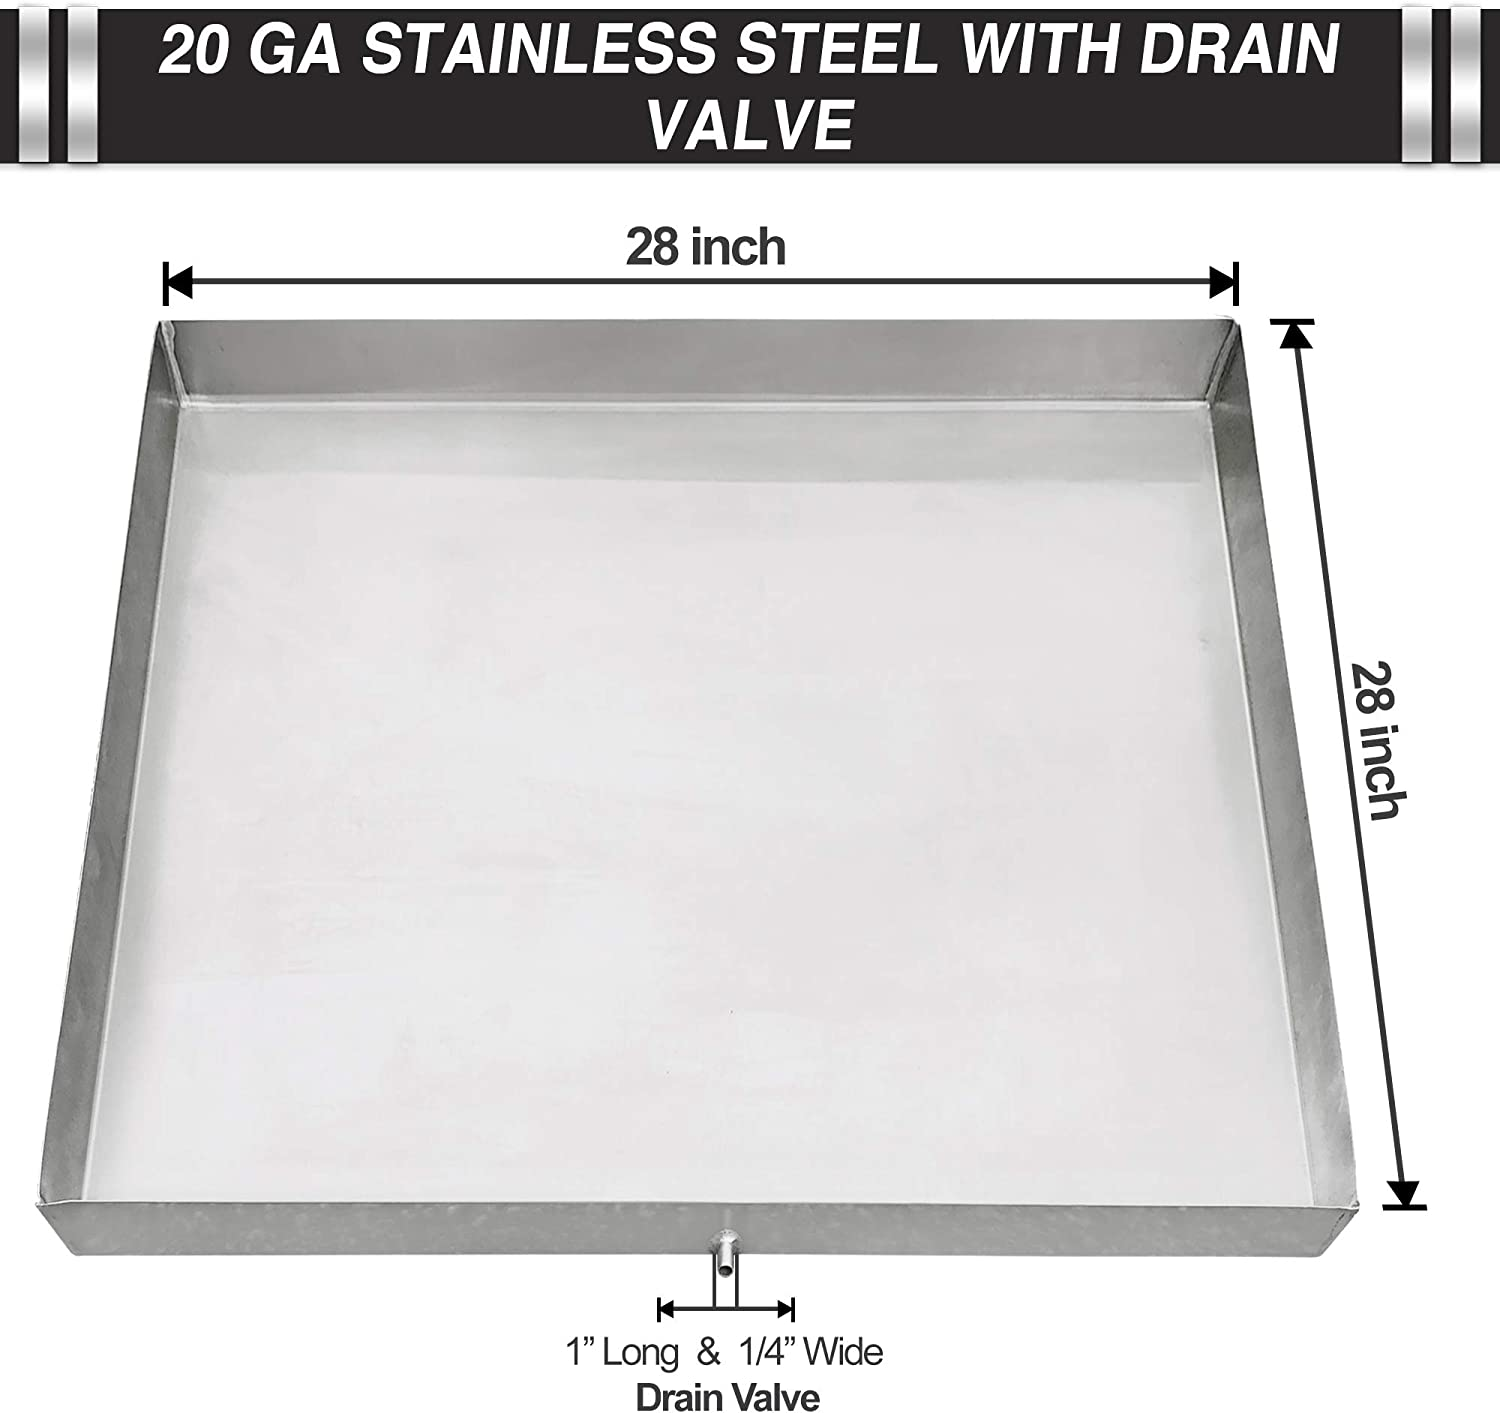 Drip Pan for Refrigerator Water Heater Air Conditioner Condensation Washing Machine Drip Pan Tray with Custom Sizes – Stainless Steel Welded Corners Includes Drain Hole & Hose Adapter - 28 x 28